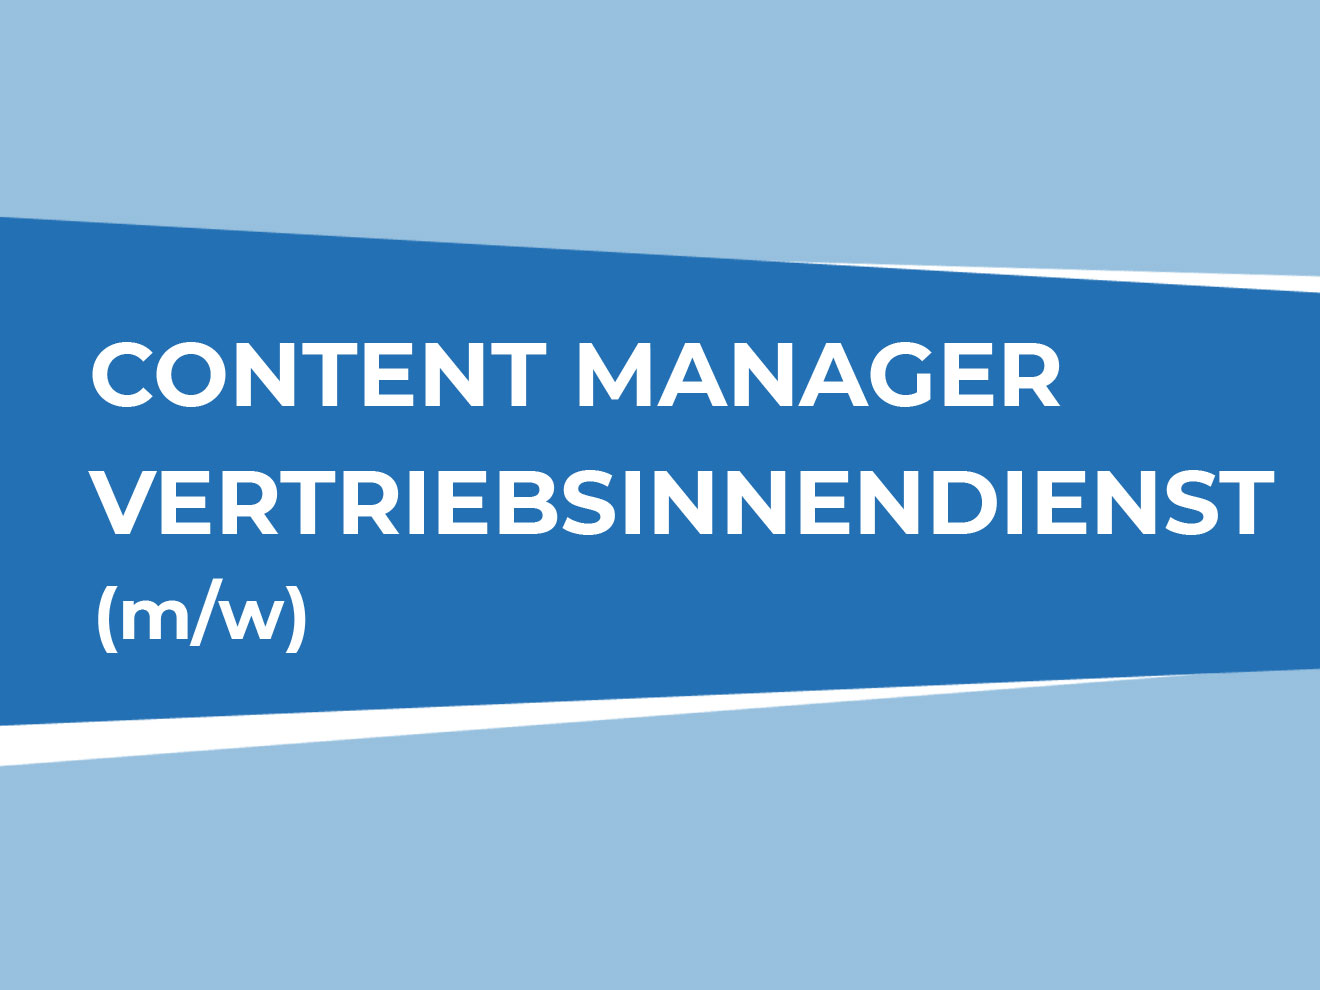 abl/content-manager.jpg